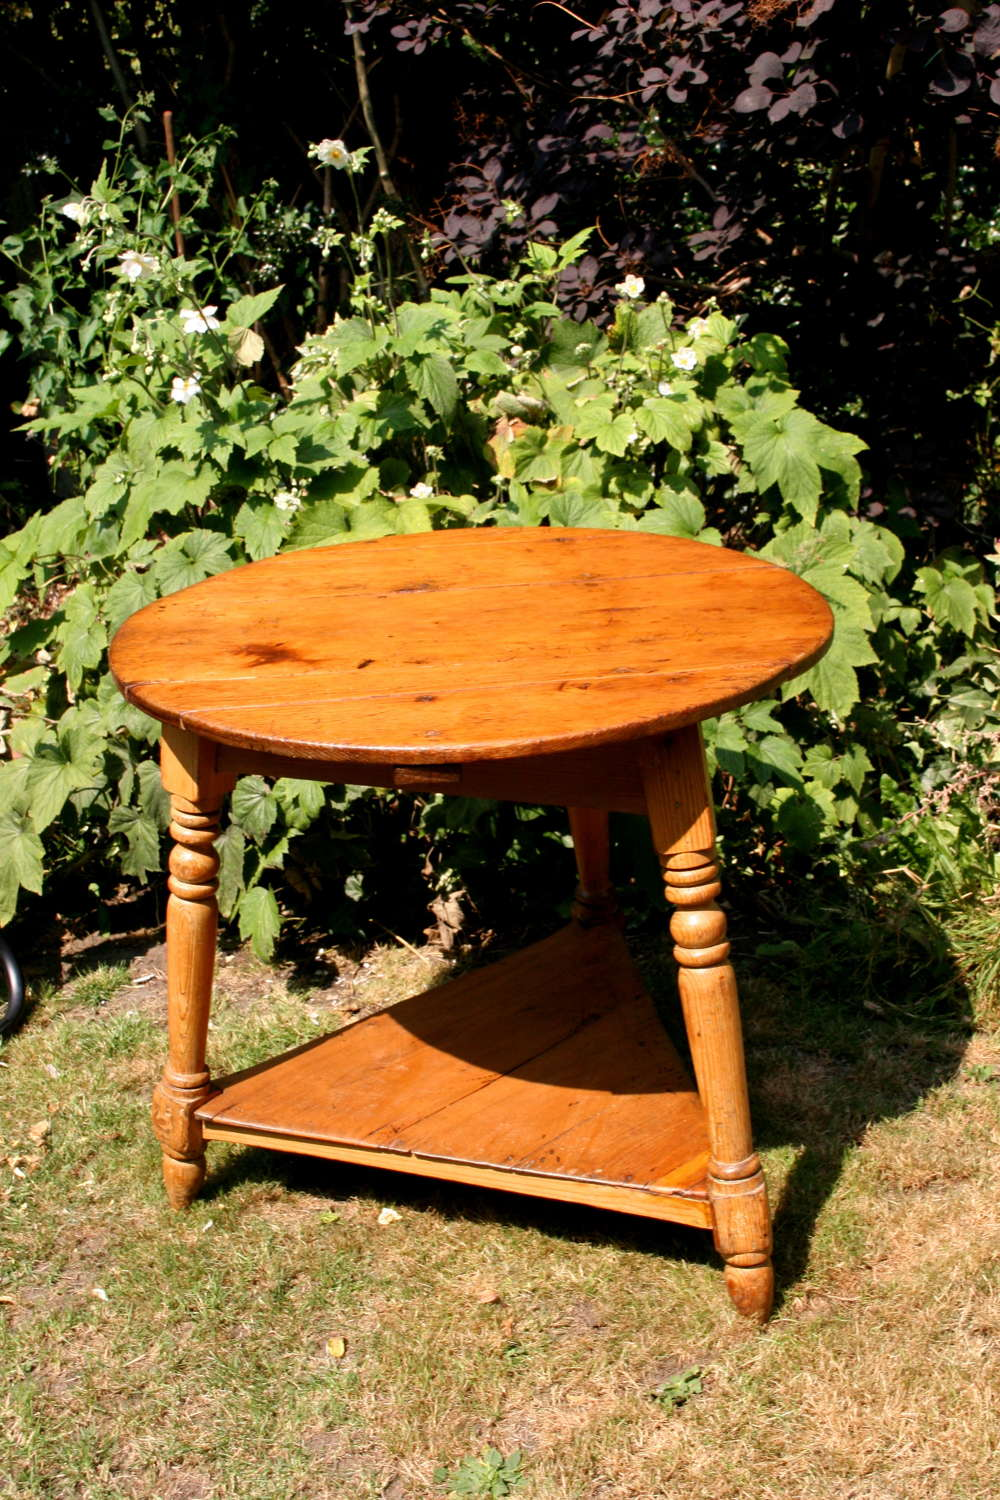 Pine Cricket Table English 1820-30